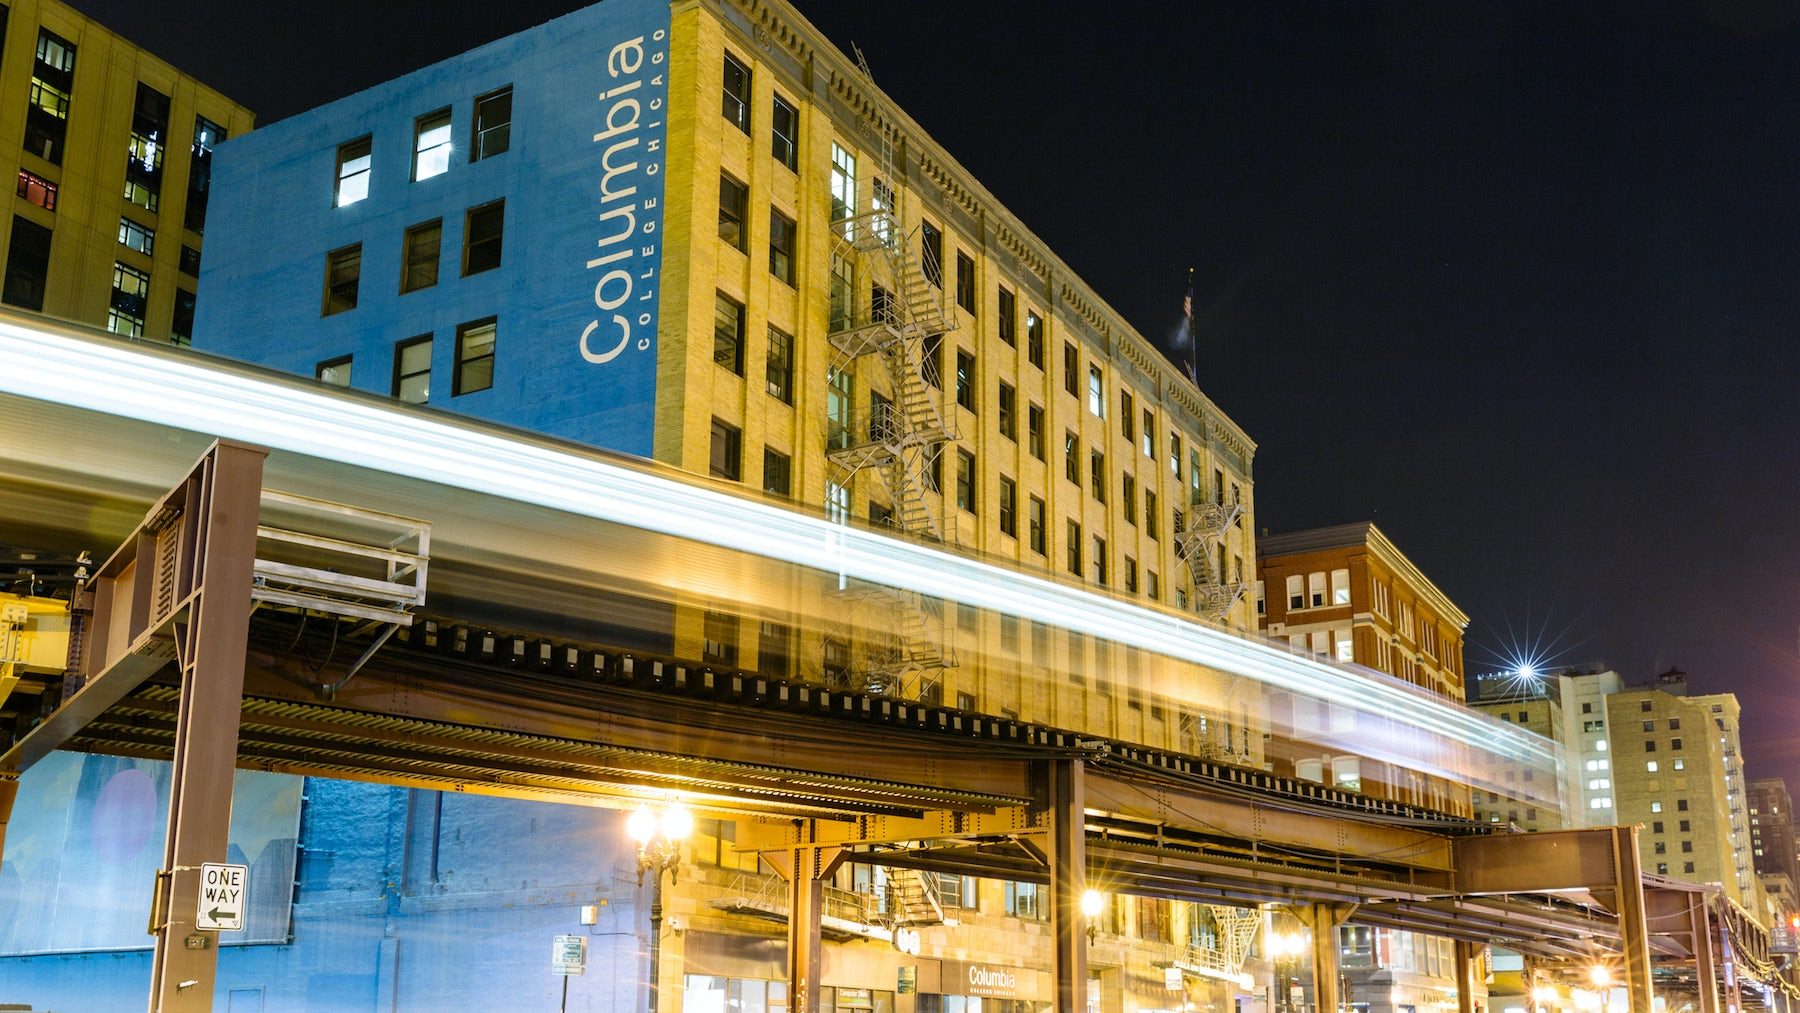 Columbia College Chicago | Source: Courtesy